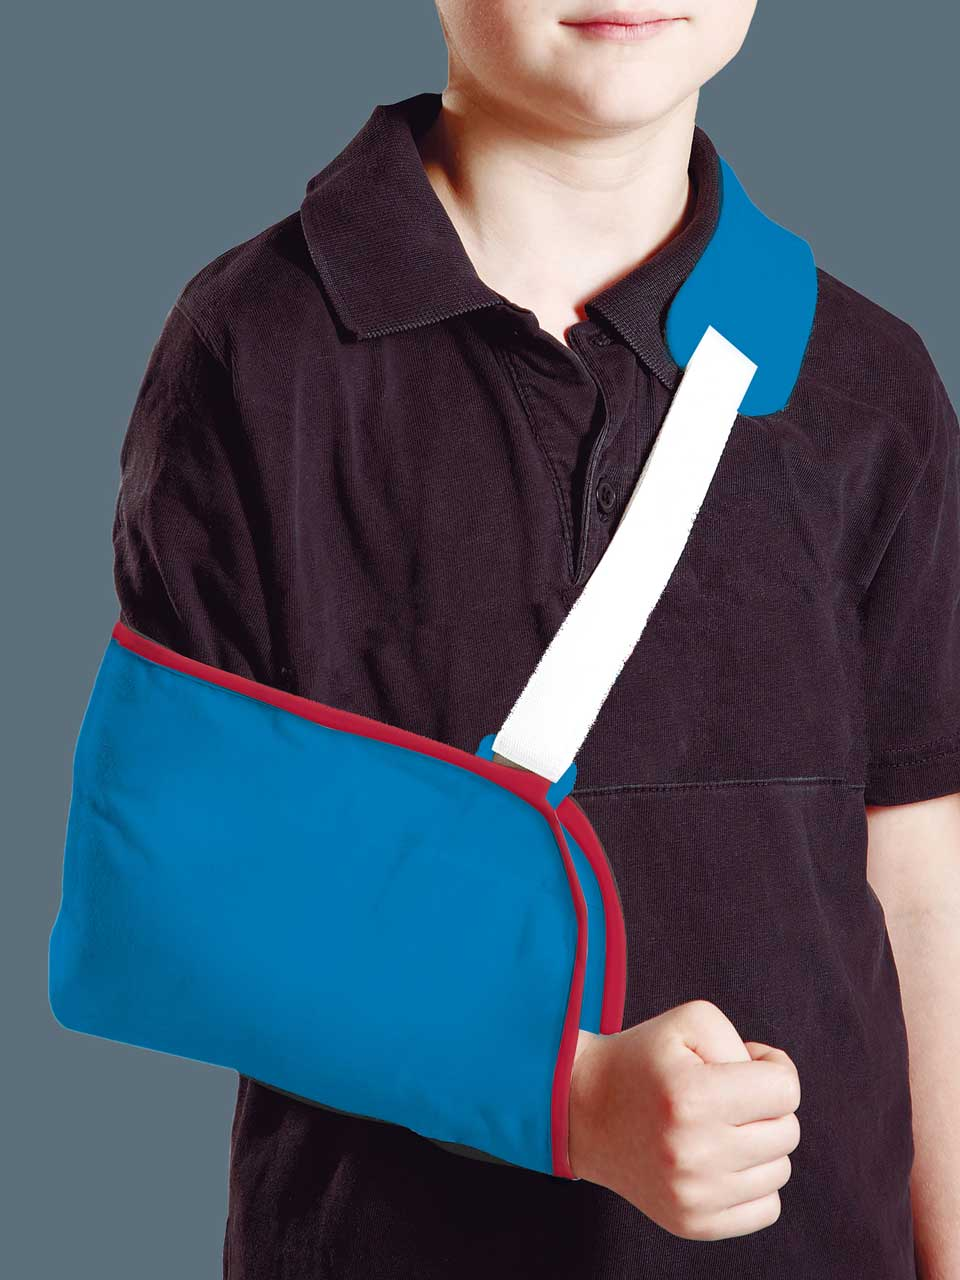 ORTHO 14-310 -  Simple arm sling